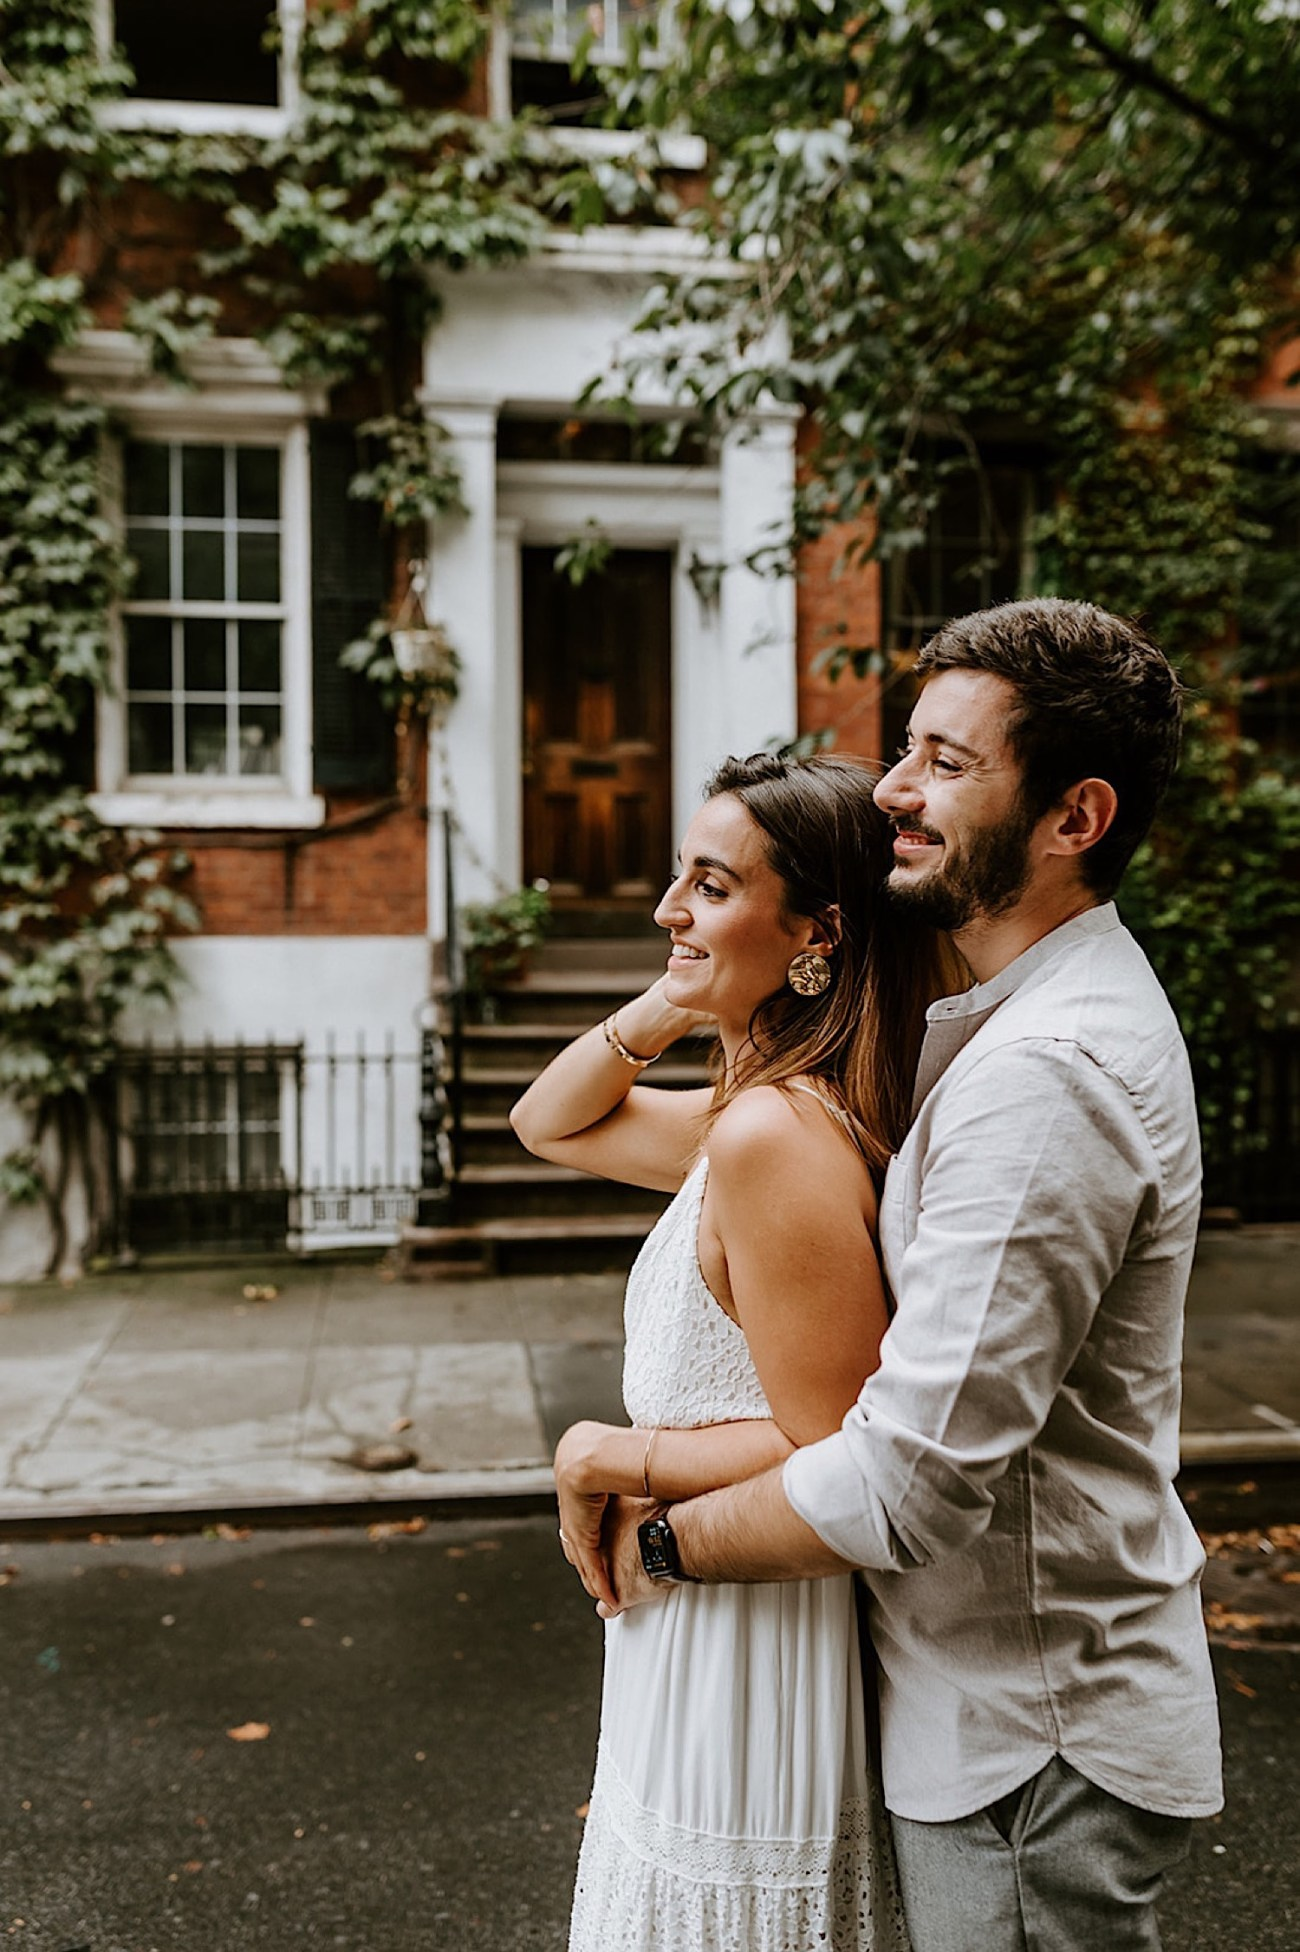 161 Greenwich Village Engagement Photos New York City Engagement Photos NYC Wedding Photographer